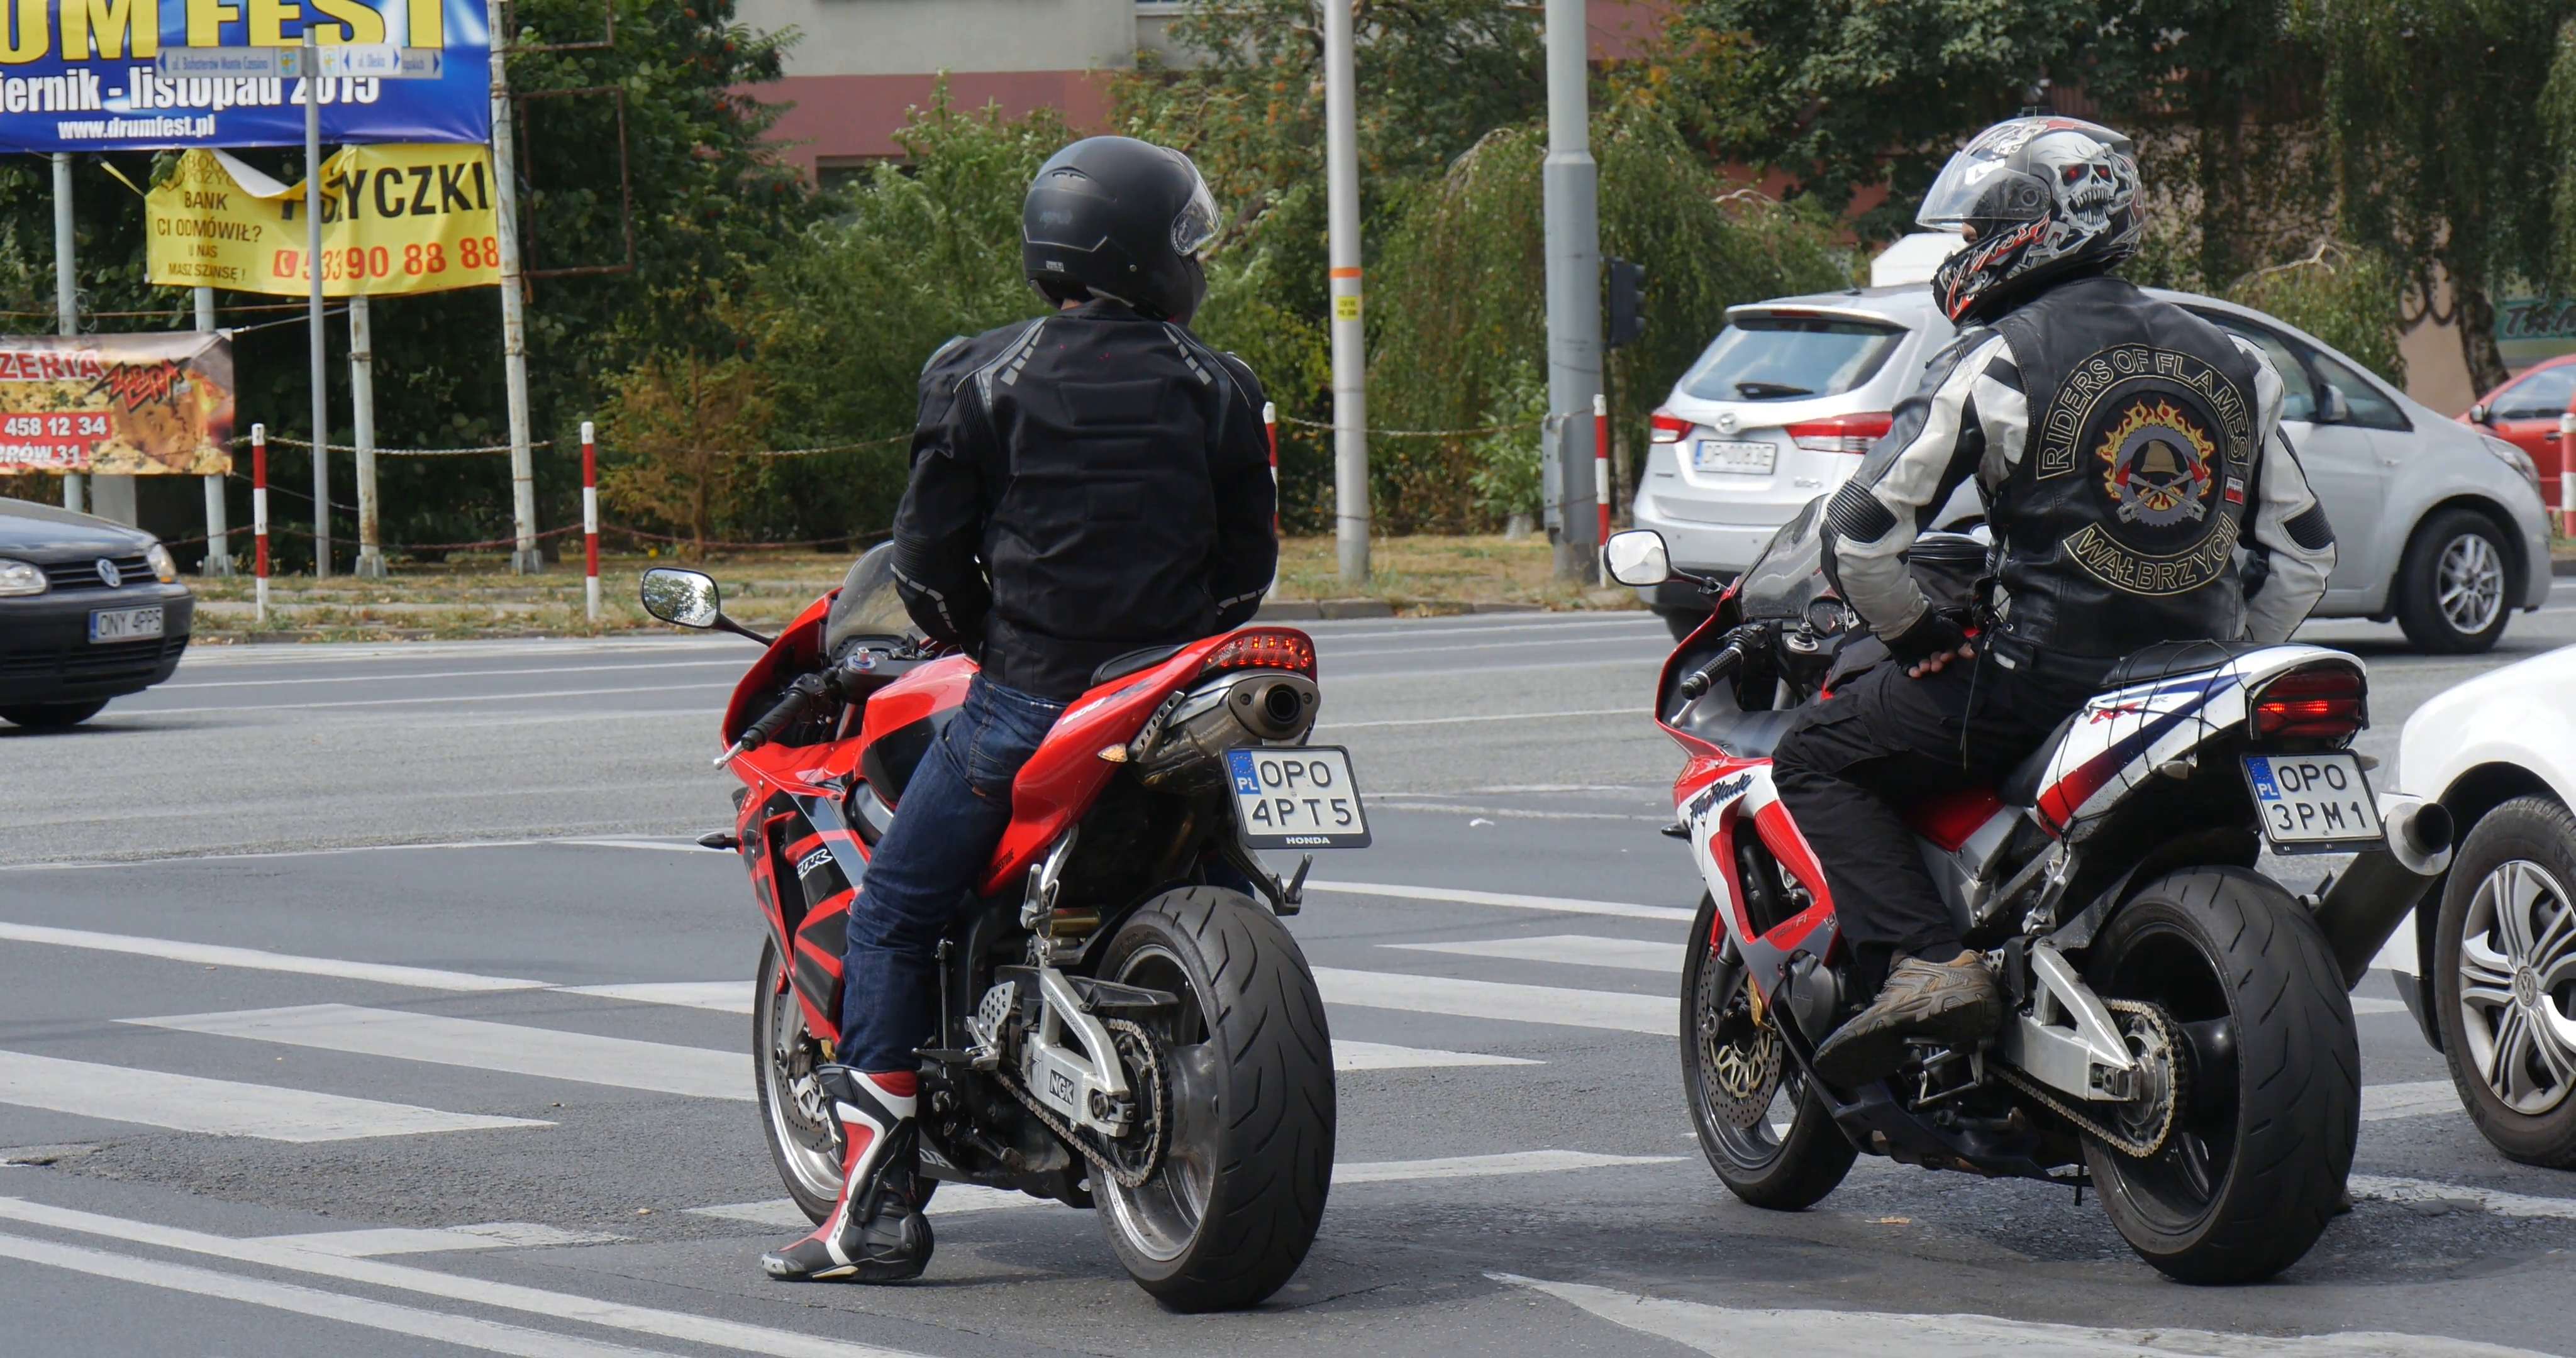 Two Motorcyclists In Motorcycle Helmets On The Sport Bikes Wait At ...